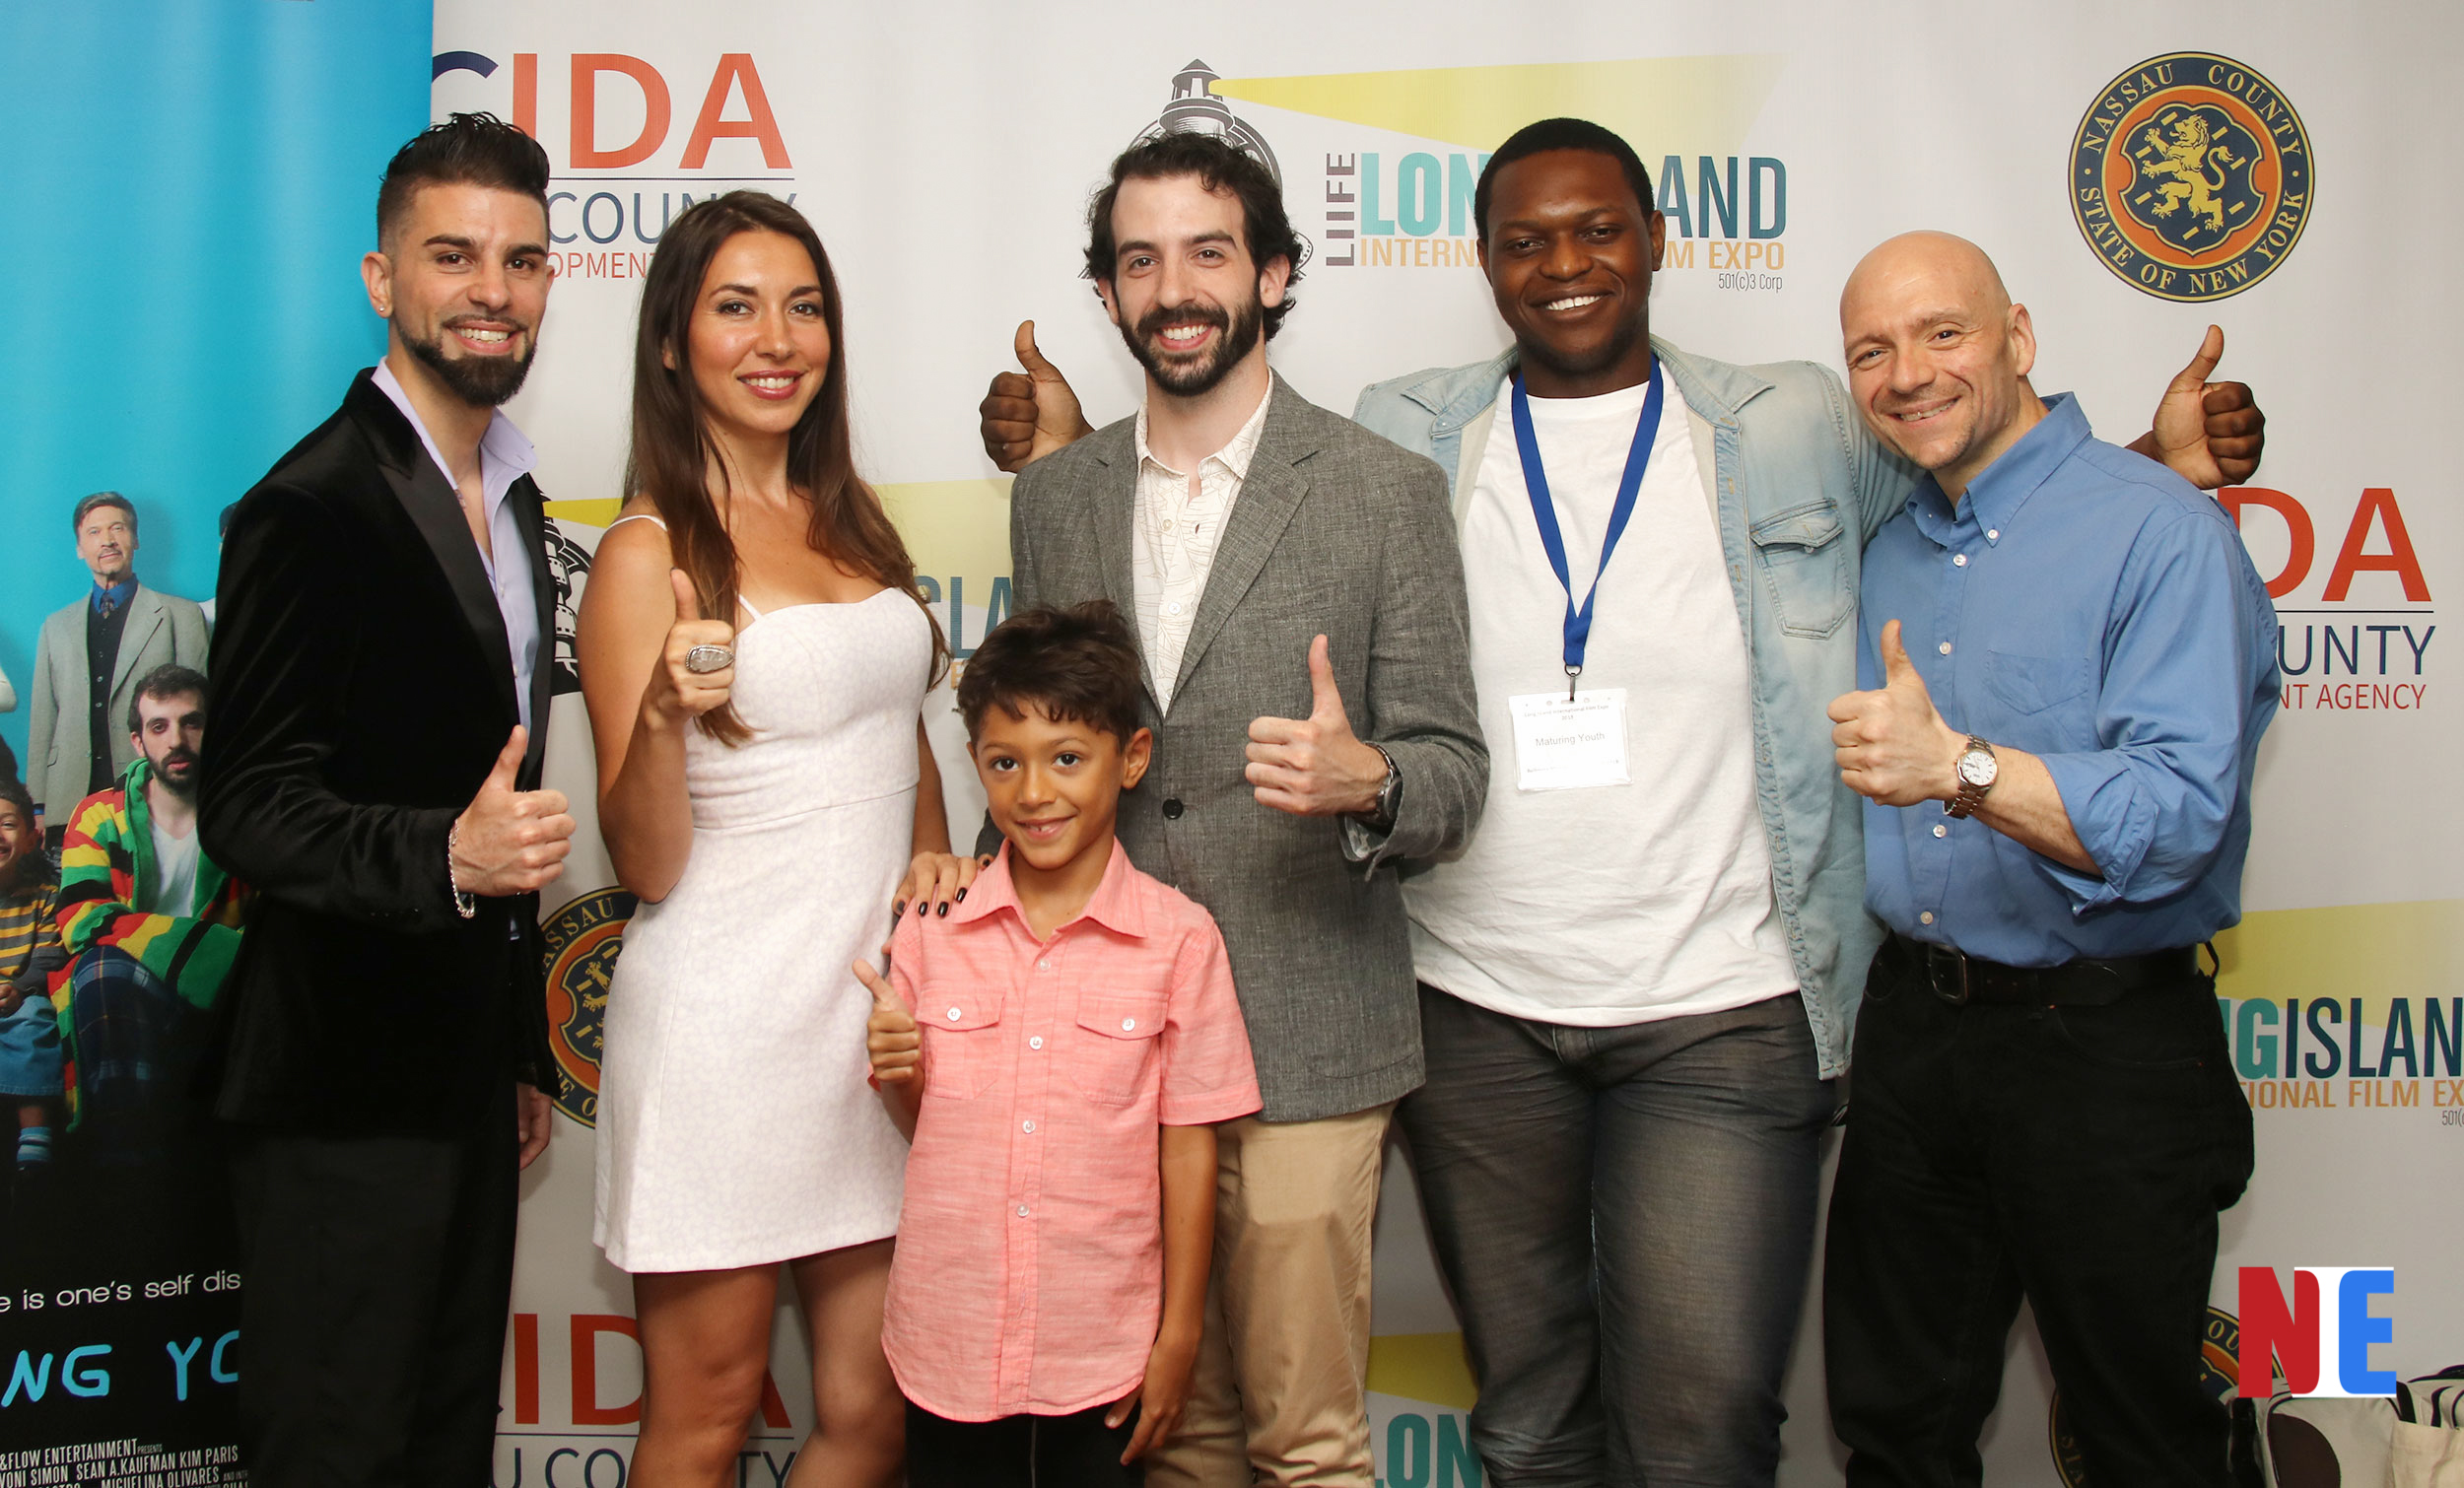 L-R Producer Chase Michael Pallante, actress Kim Paris, child actor Joshua Saint Leger, actor Sean A. Kaufman, writer/director Divoni Simon, and voiceover actor Michael Paladine attend the Long Island International Film Expo at the Bellmore Movies and Showplace in New York on July 12, 2019 |  Courtesy of NIE